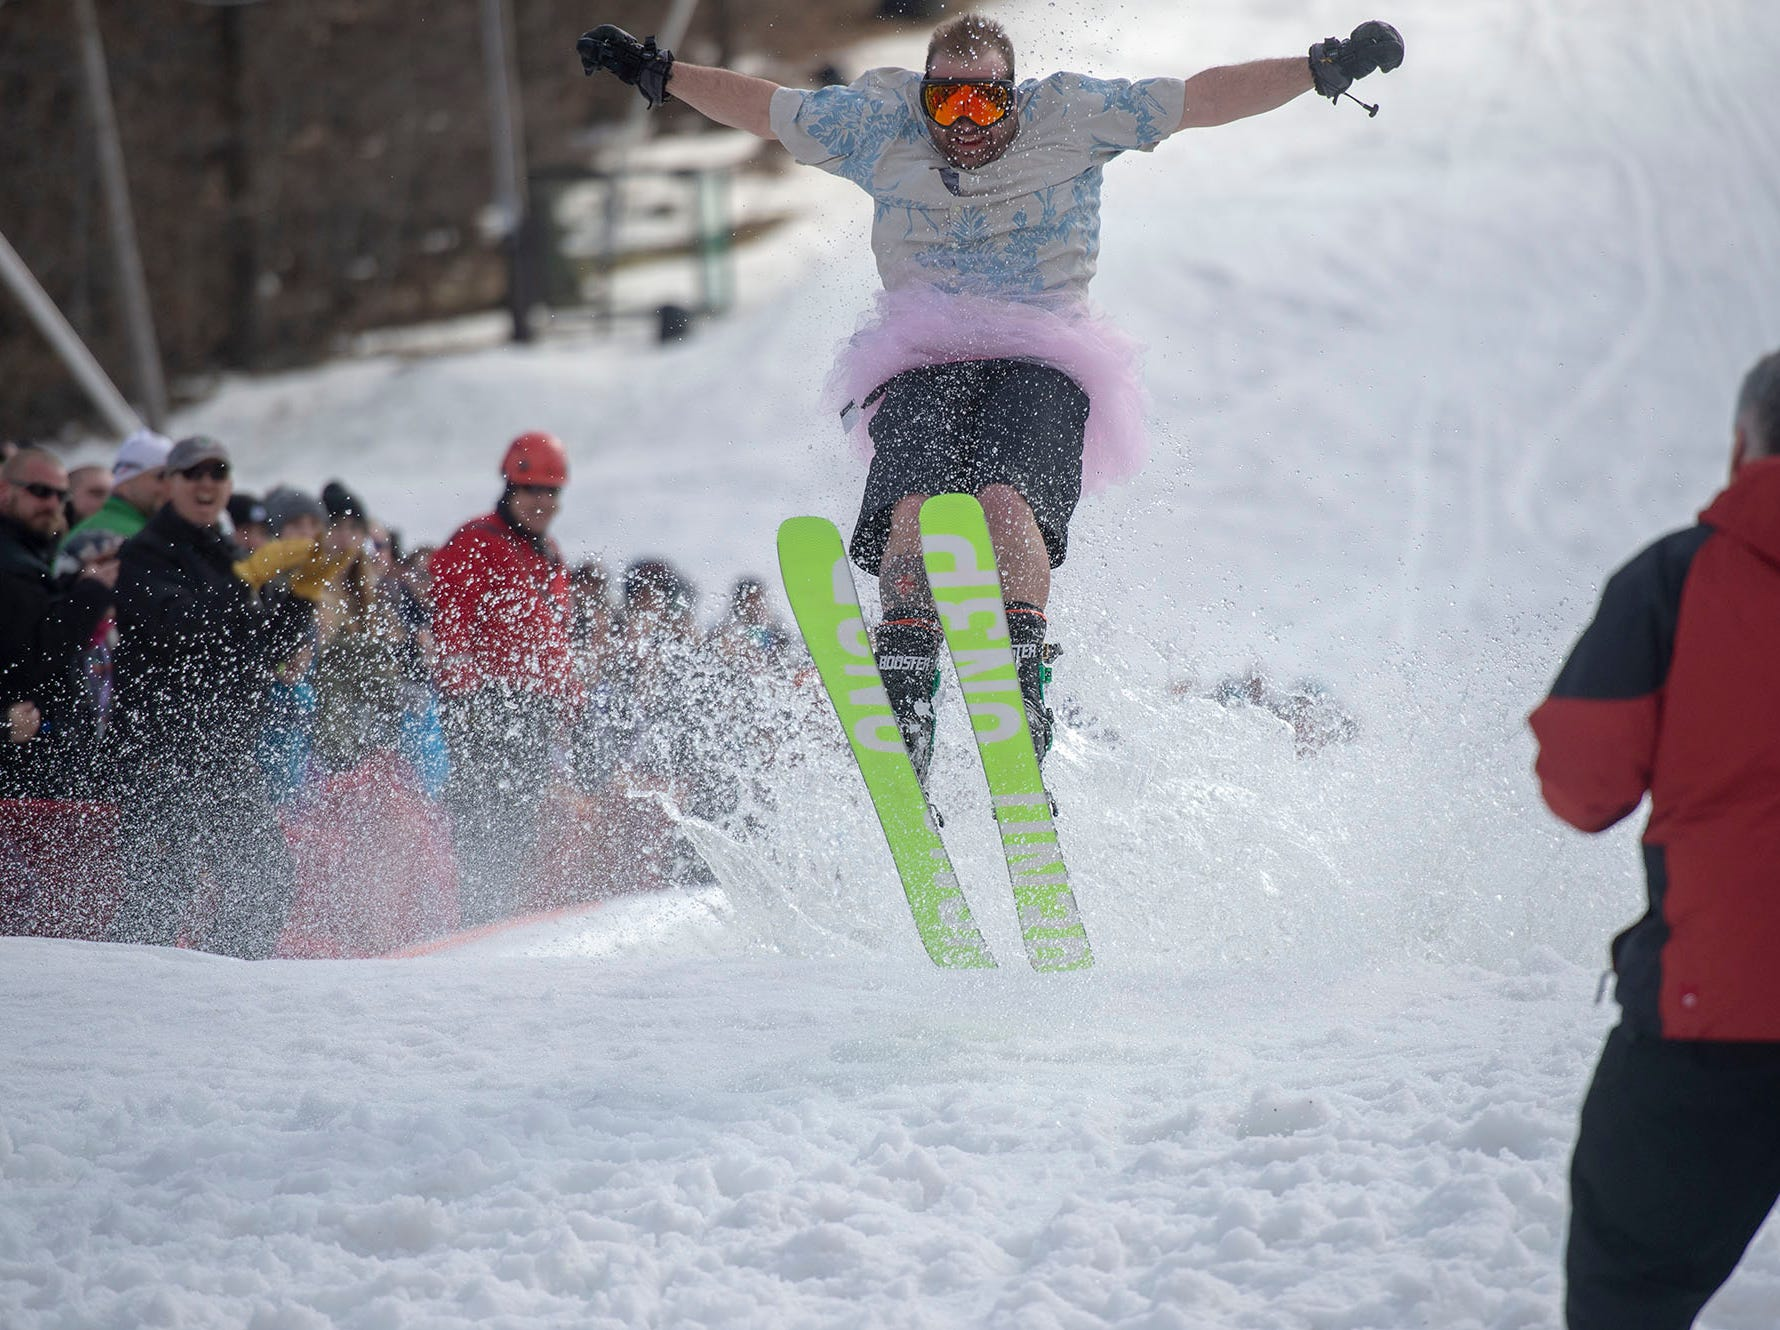 Spectators cheer as the first participant gets air while exiting the pond at Roundtop Mountain Resort on Saturday, March 16, 2019.